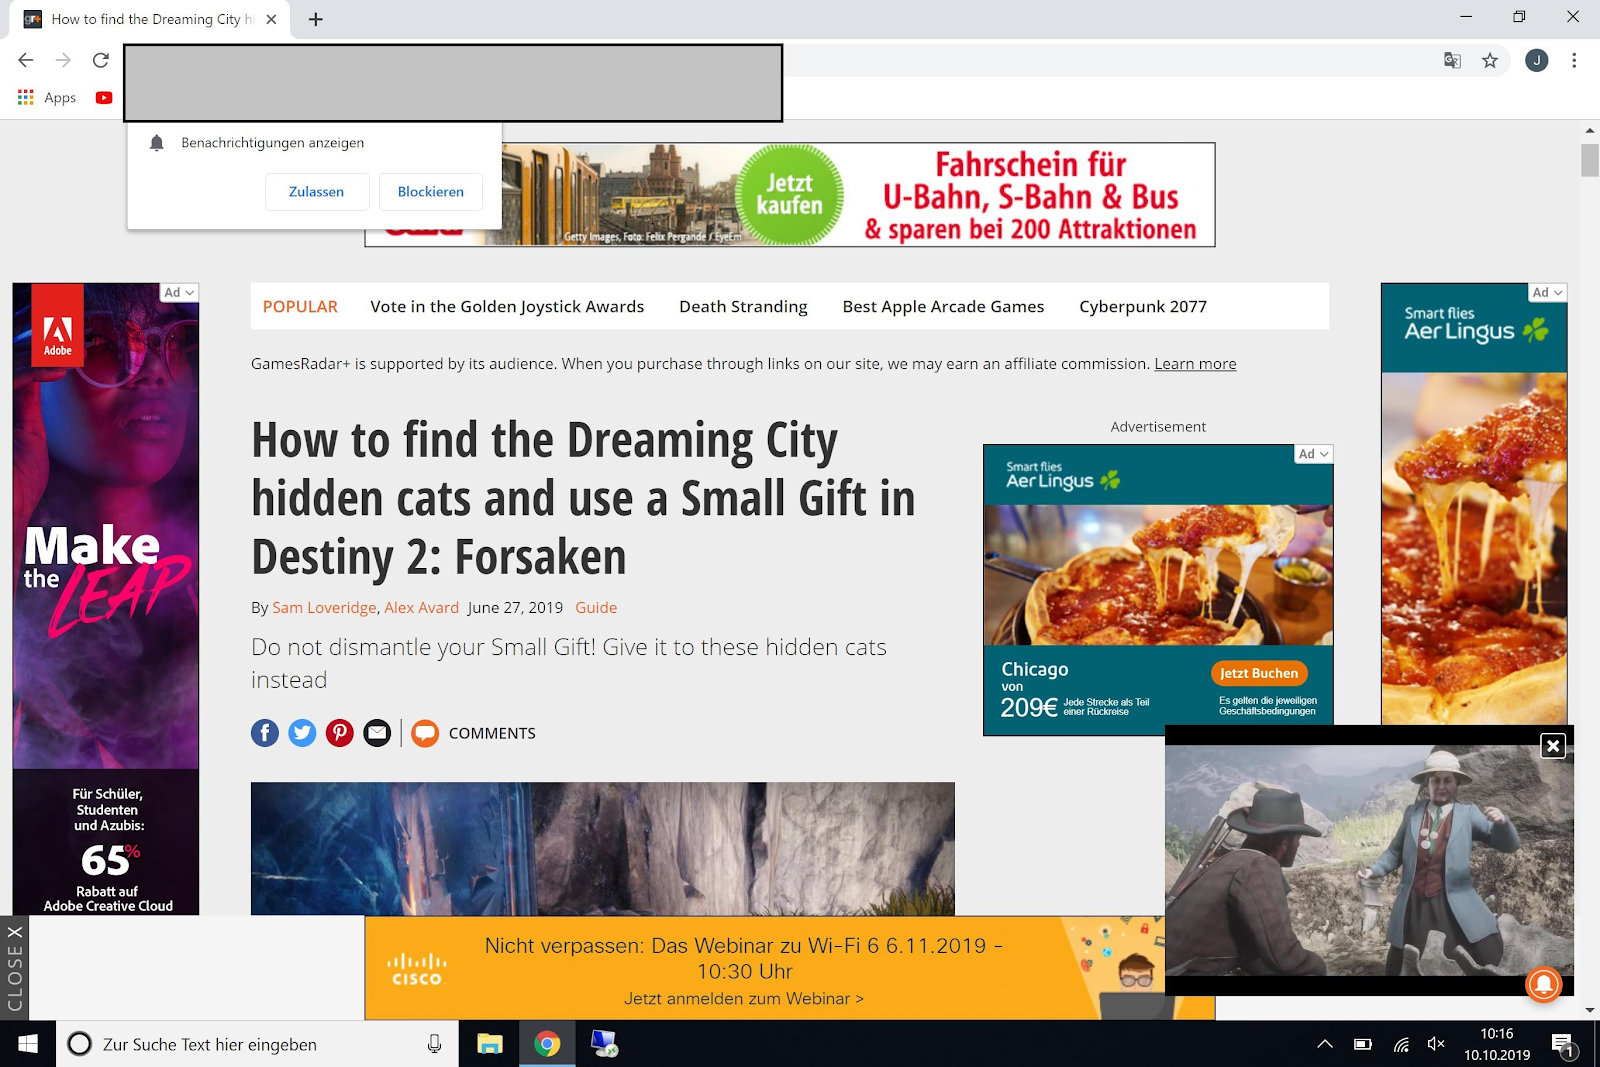 website without ad-block